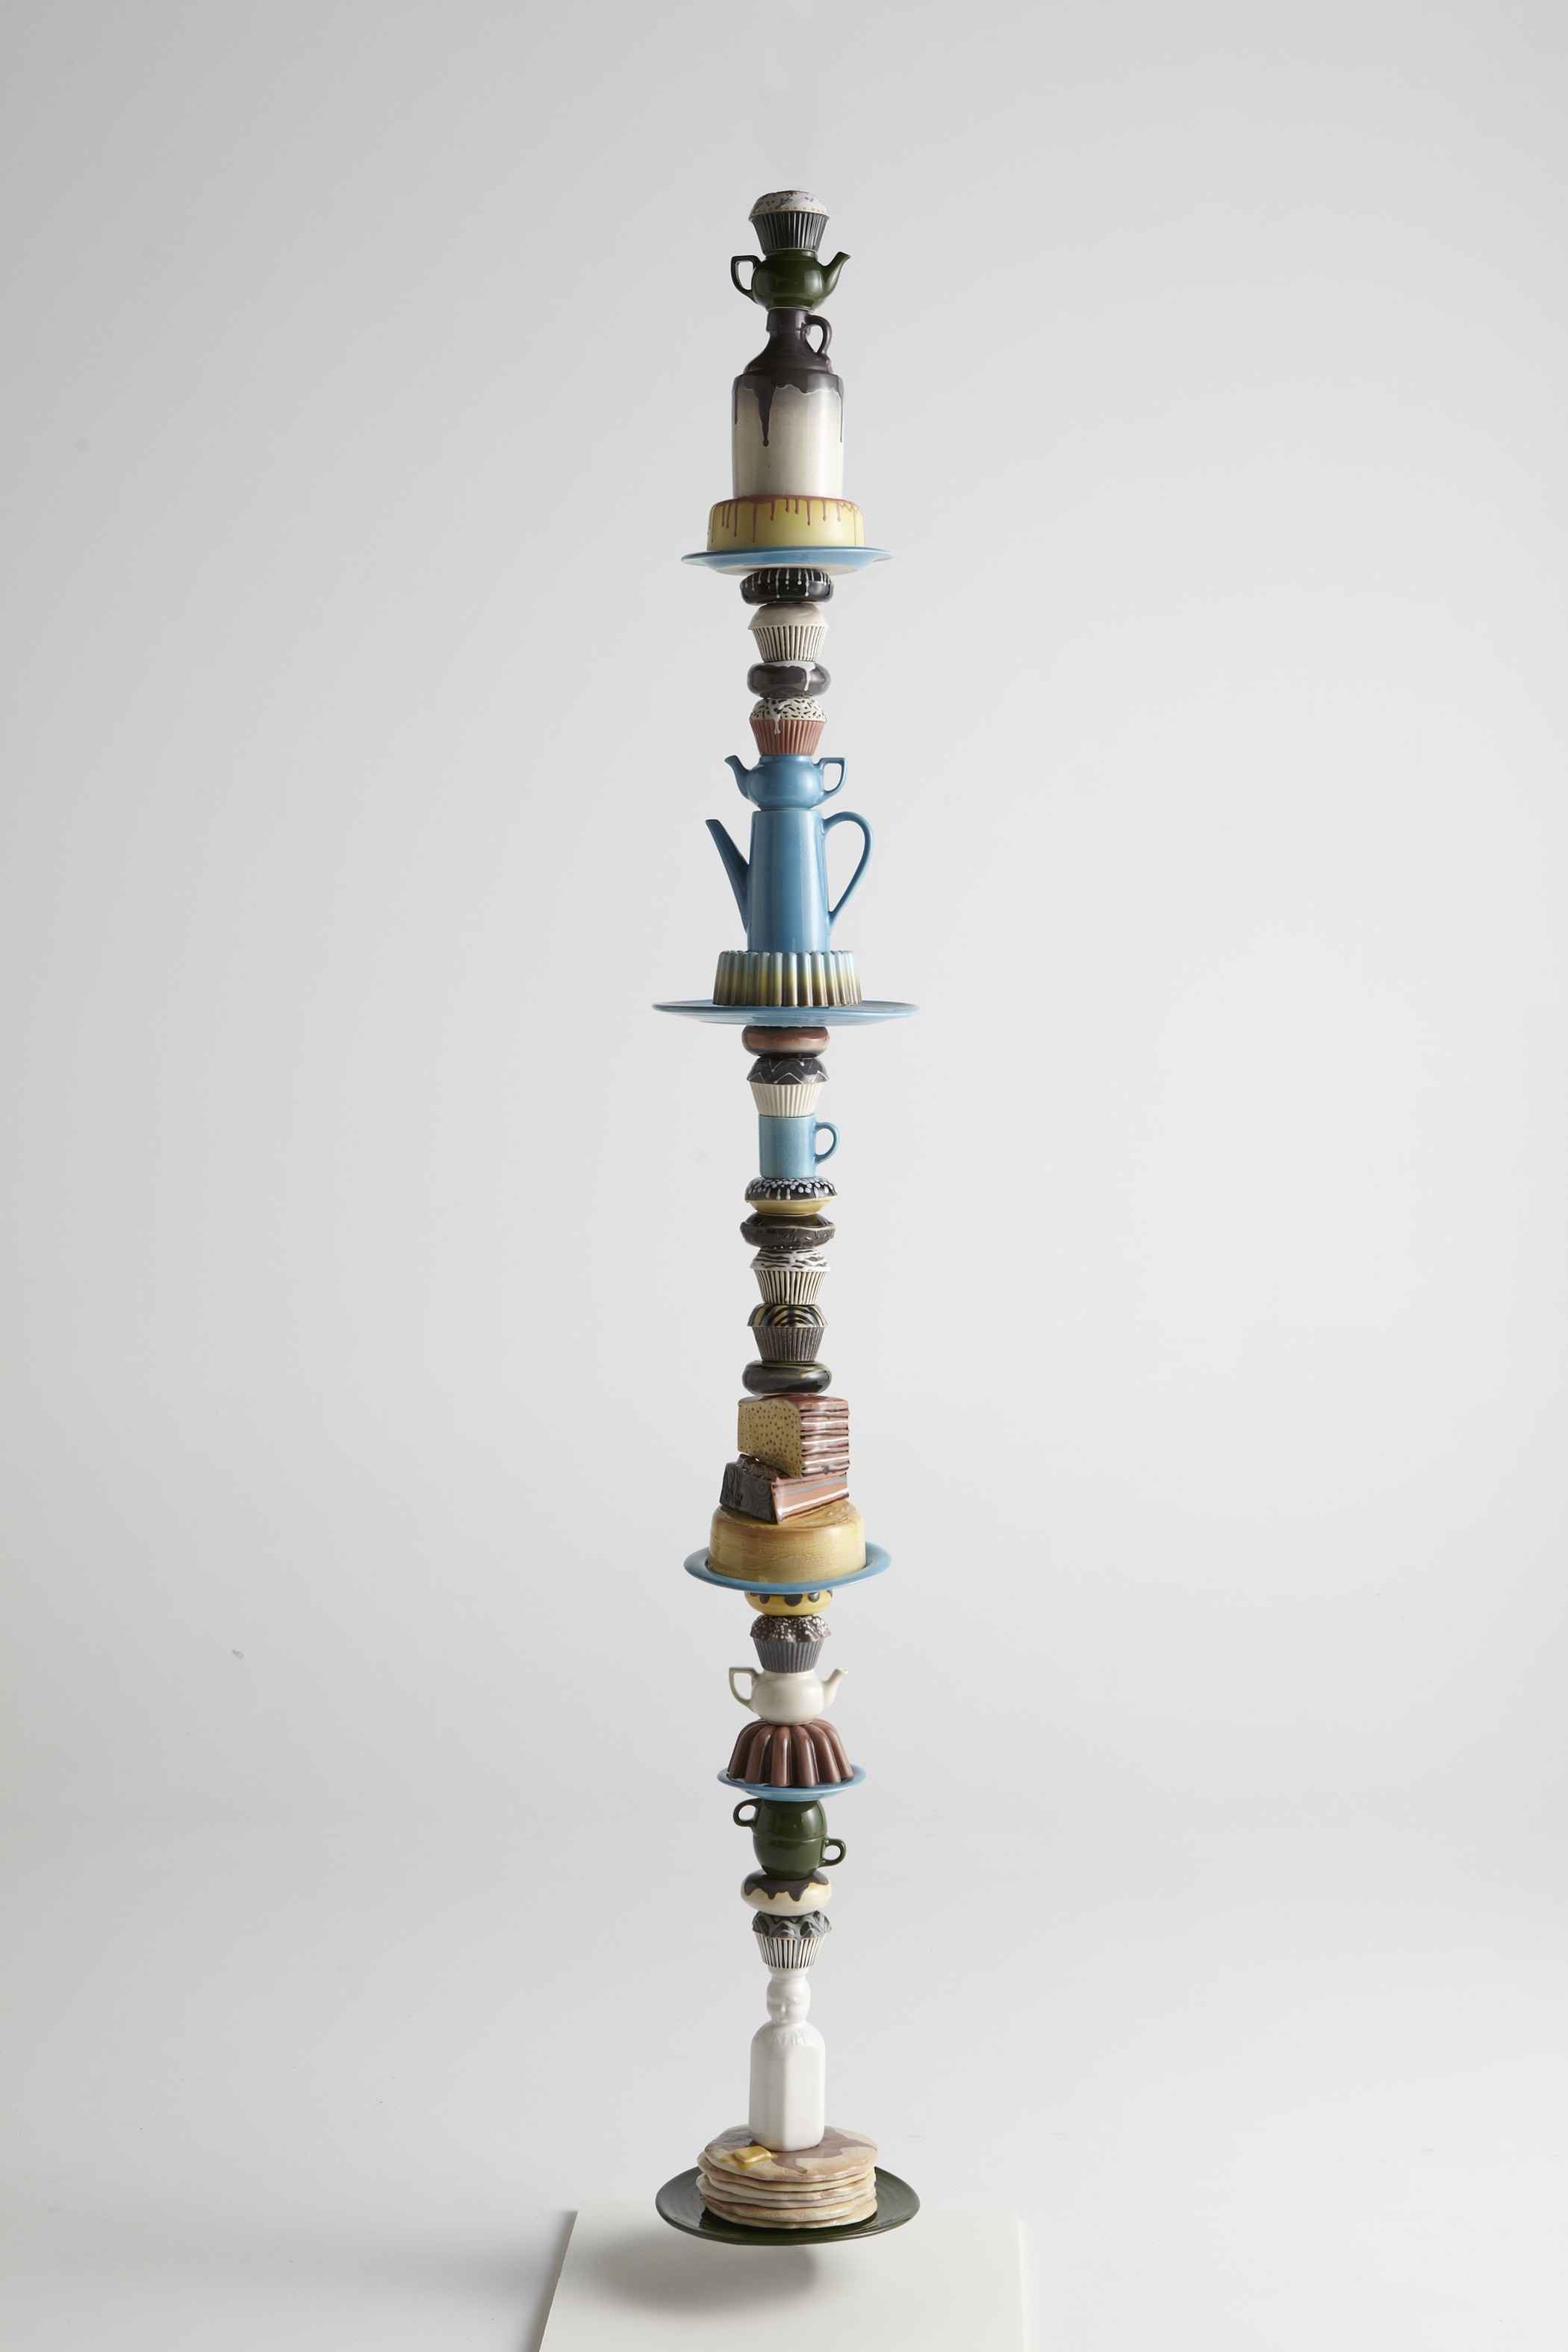 'Endless Column' (slip cast vitreous china, 108 x 4-12 x 4-12 inches, 2013) by Justin Richel *collection of Kohler Co.